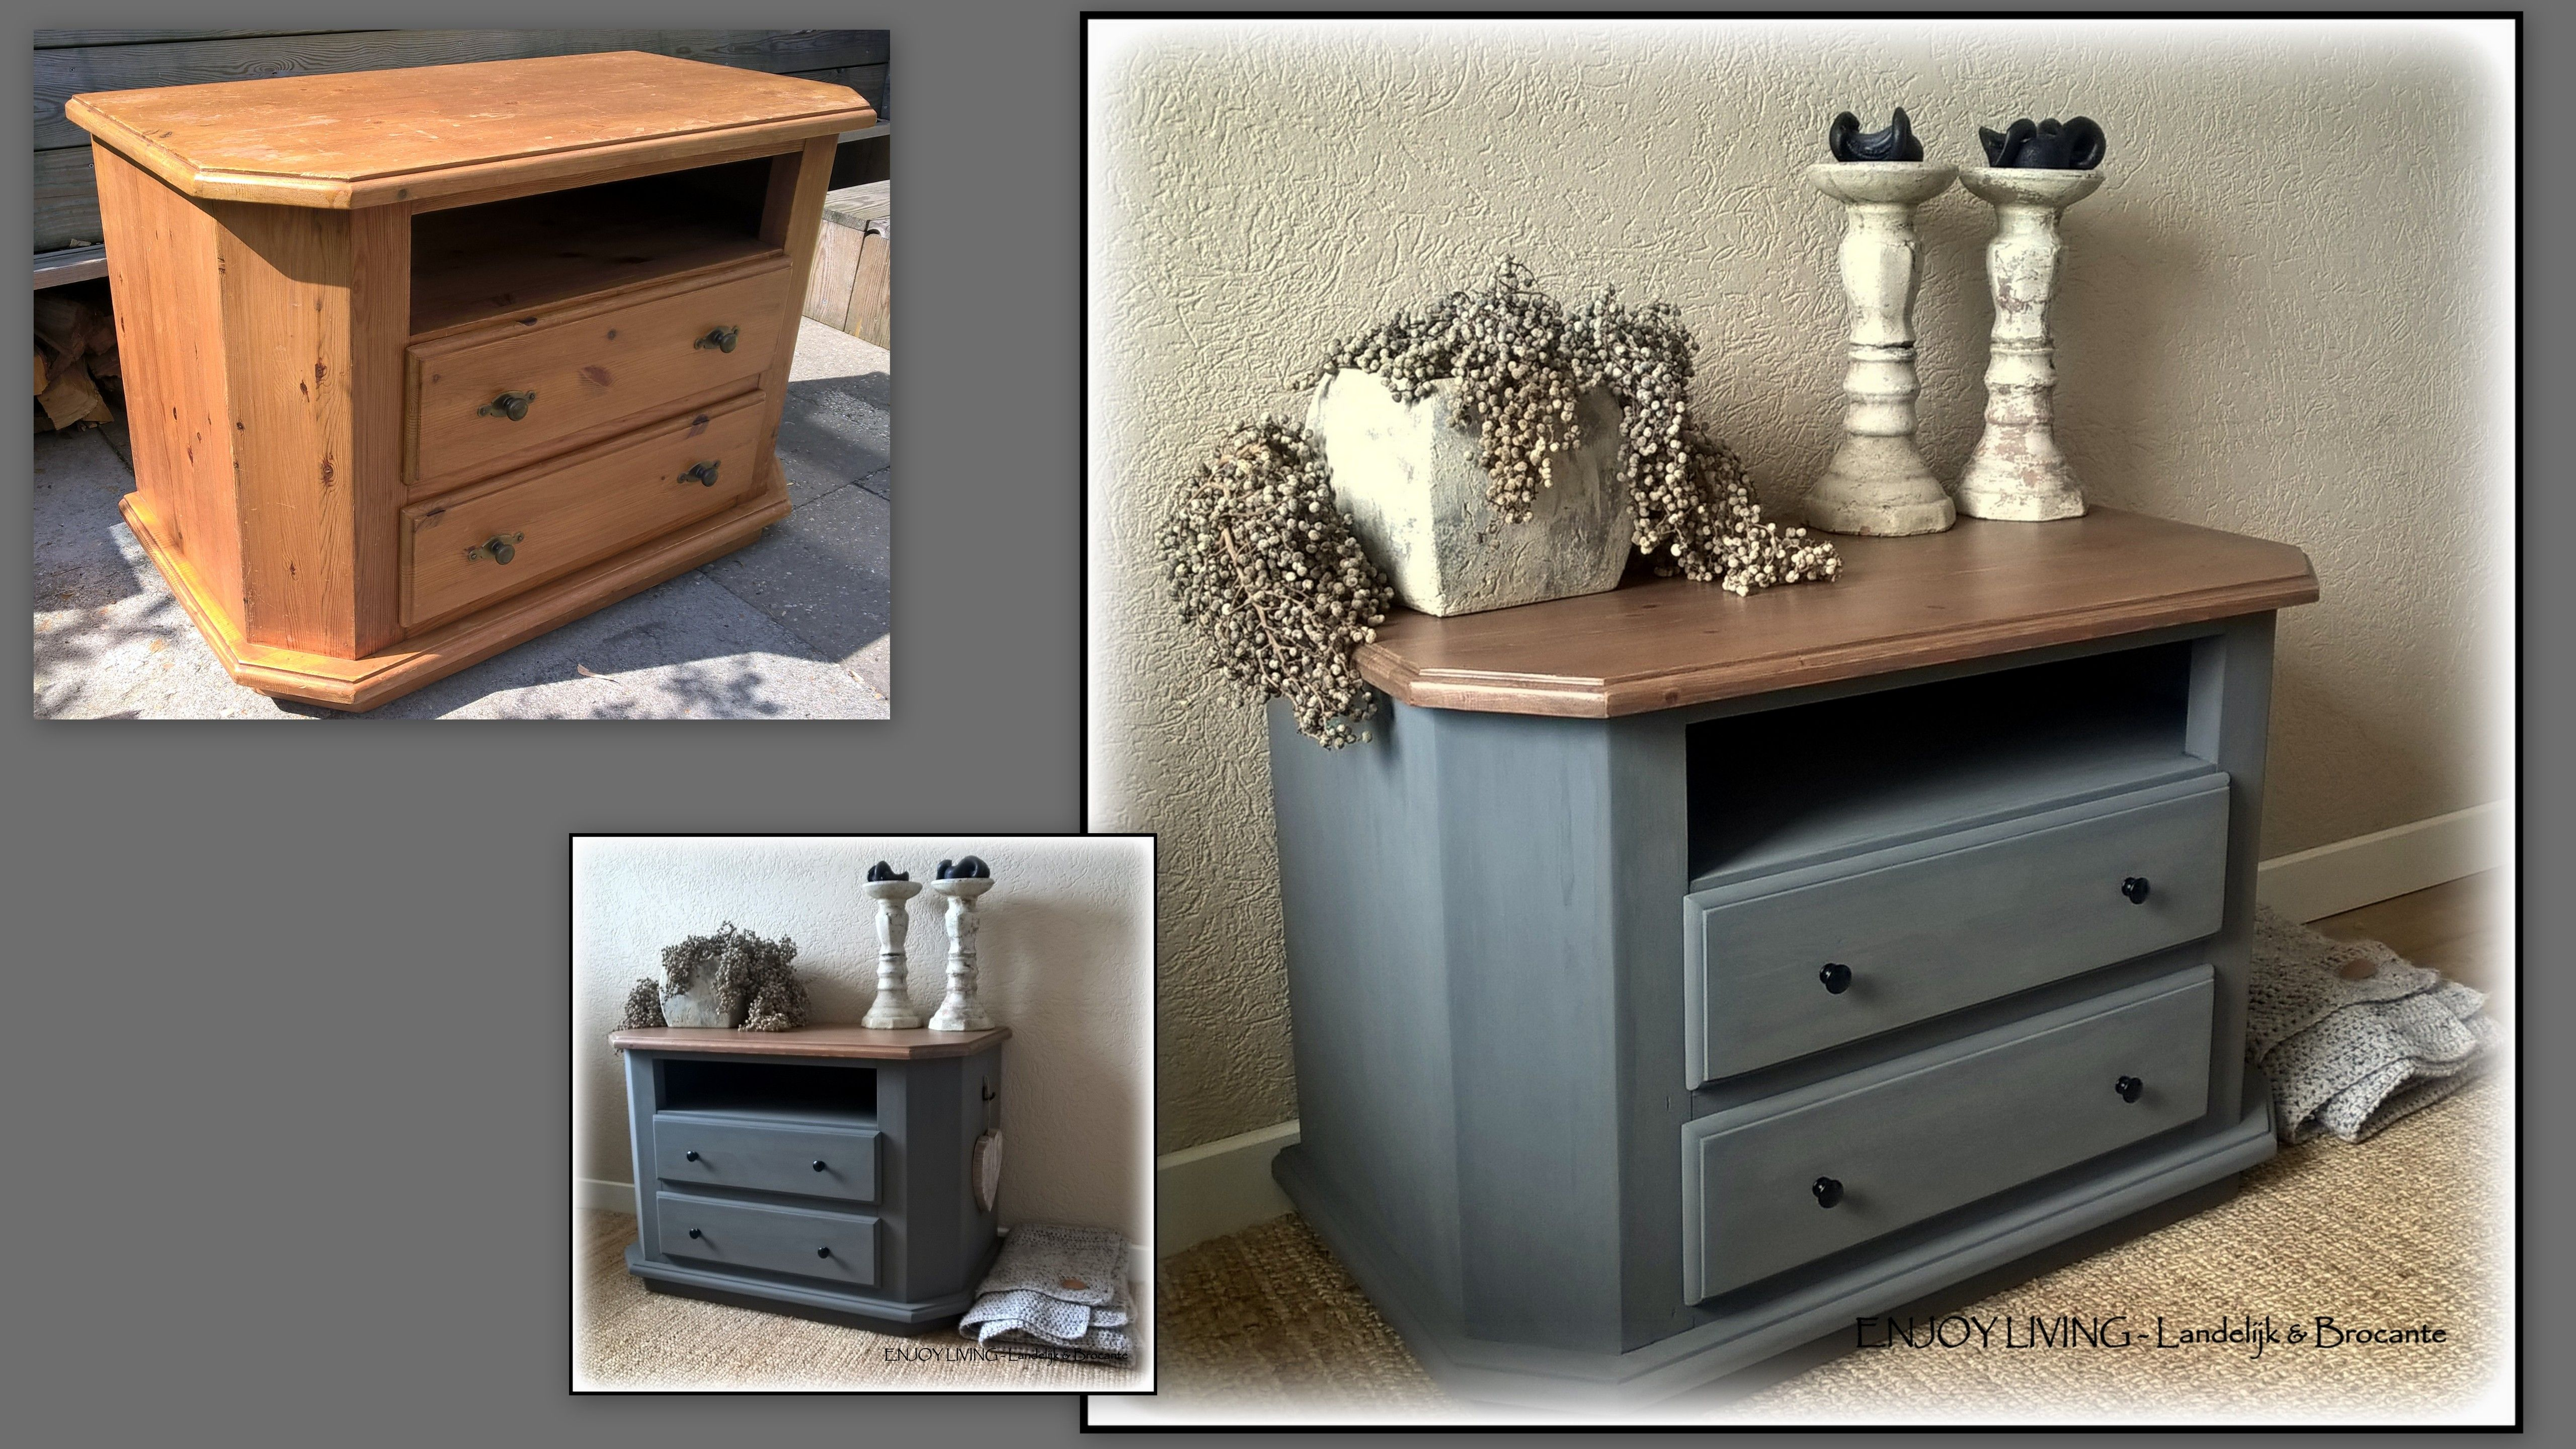 Tv Kast Dressoir.Robuust Landelijke Tv Kast Dressoir Gerestyled In Old Grey Extra